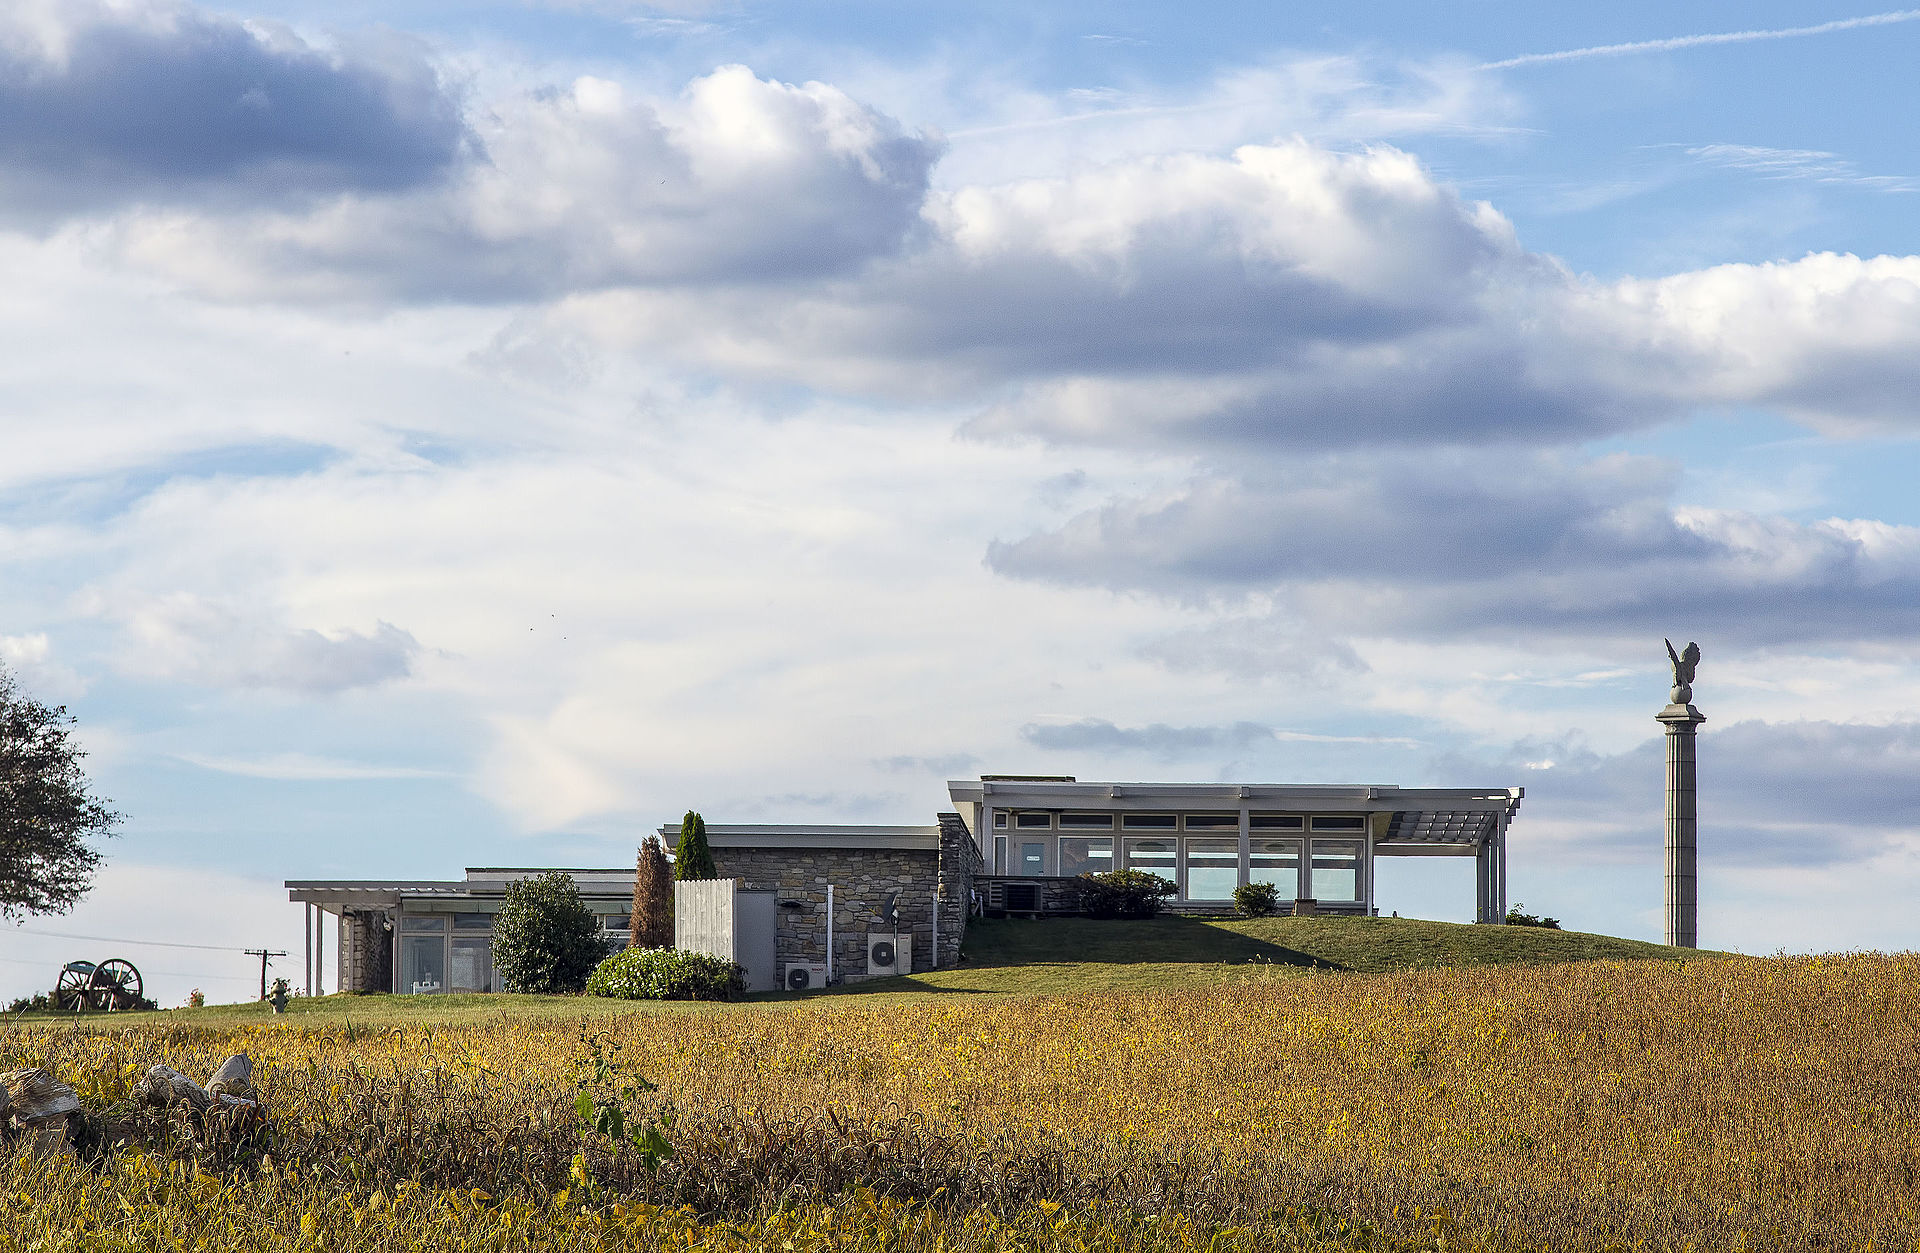 Like over 100 visitor centers constructed in the Mission 66 era, Antietam's Visitor Center is an example of Modernist architecture, which uses simple lines, forms, and materials to create a practical space. Wikimedia Commons.